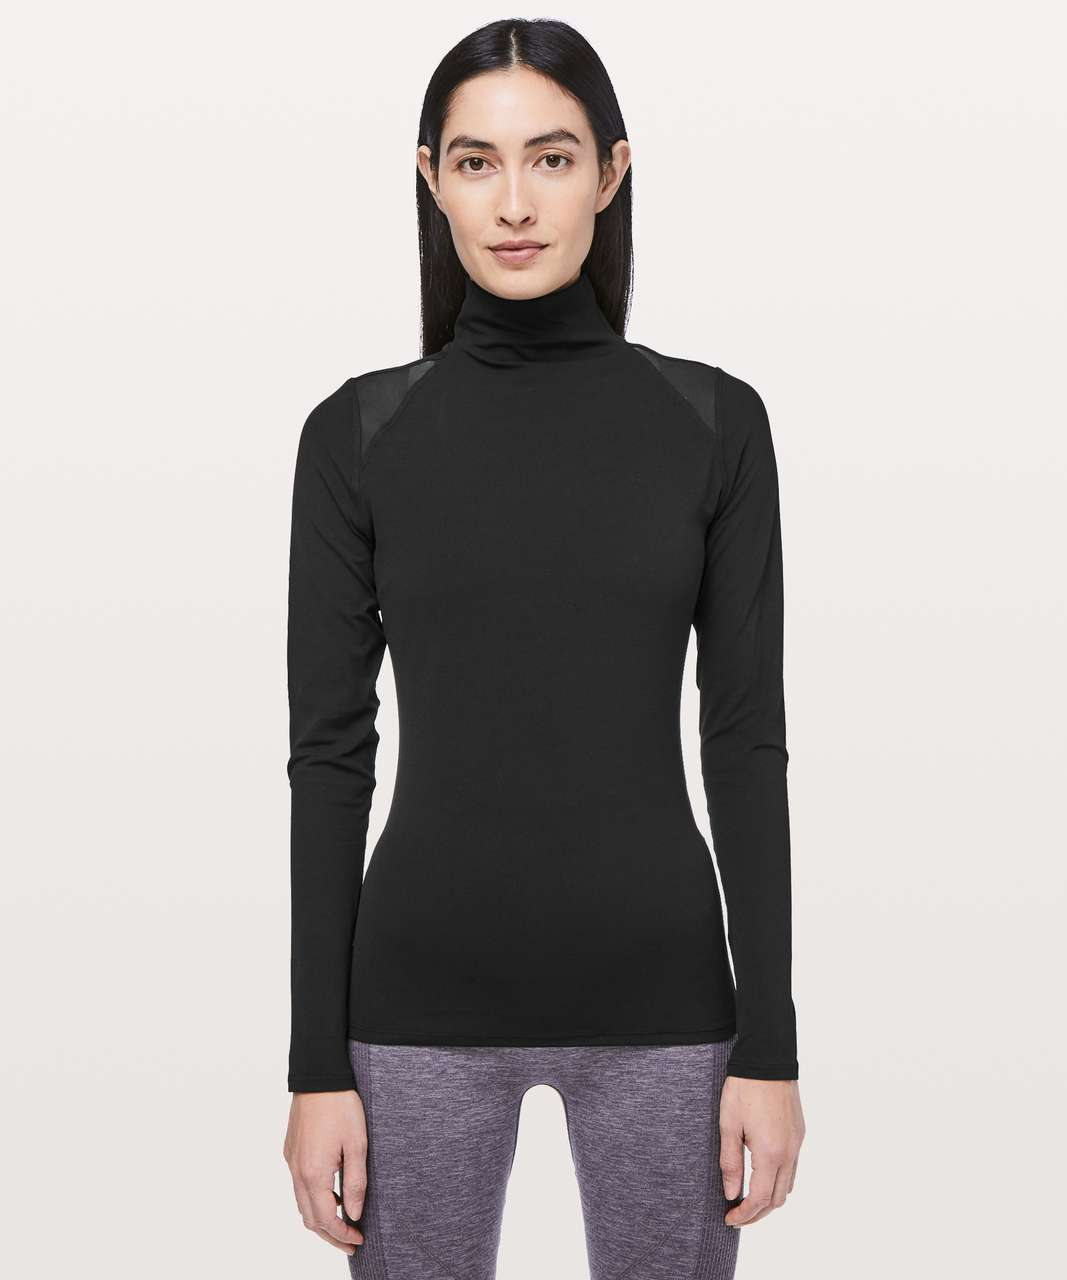 Lululemon Ethereal Mock Neck - Black